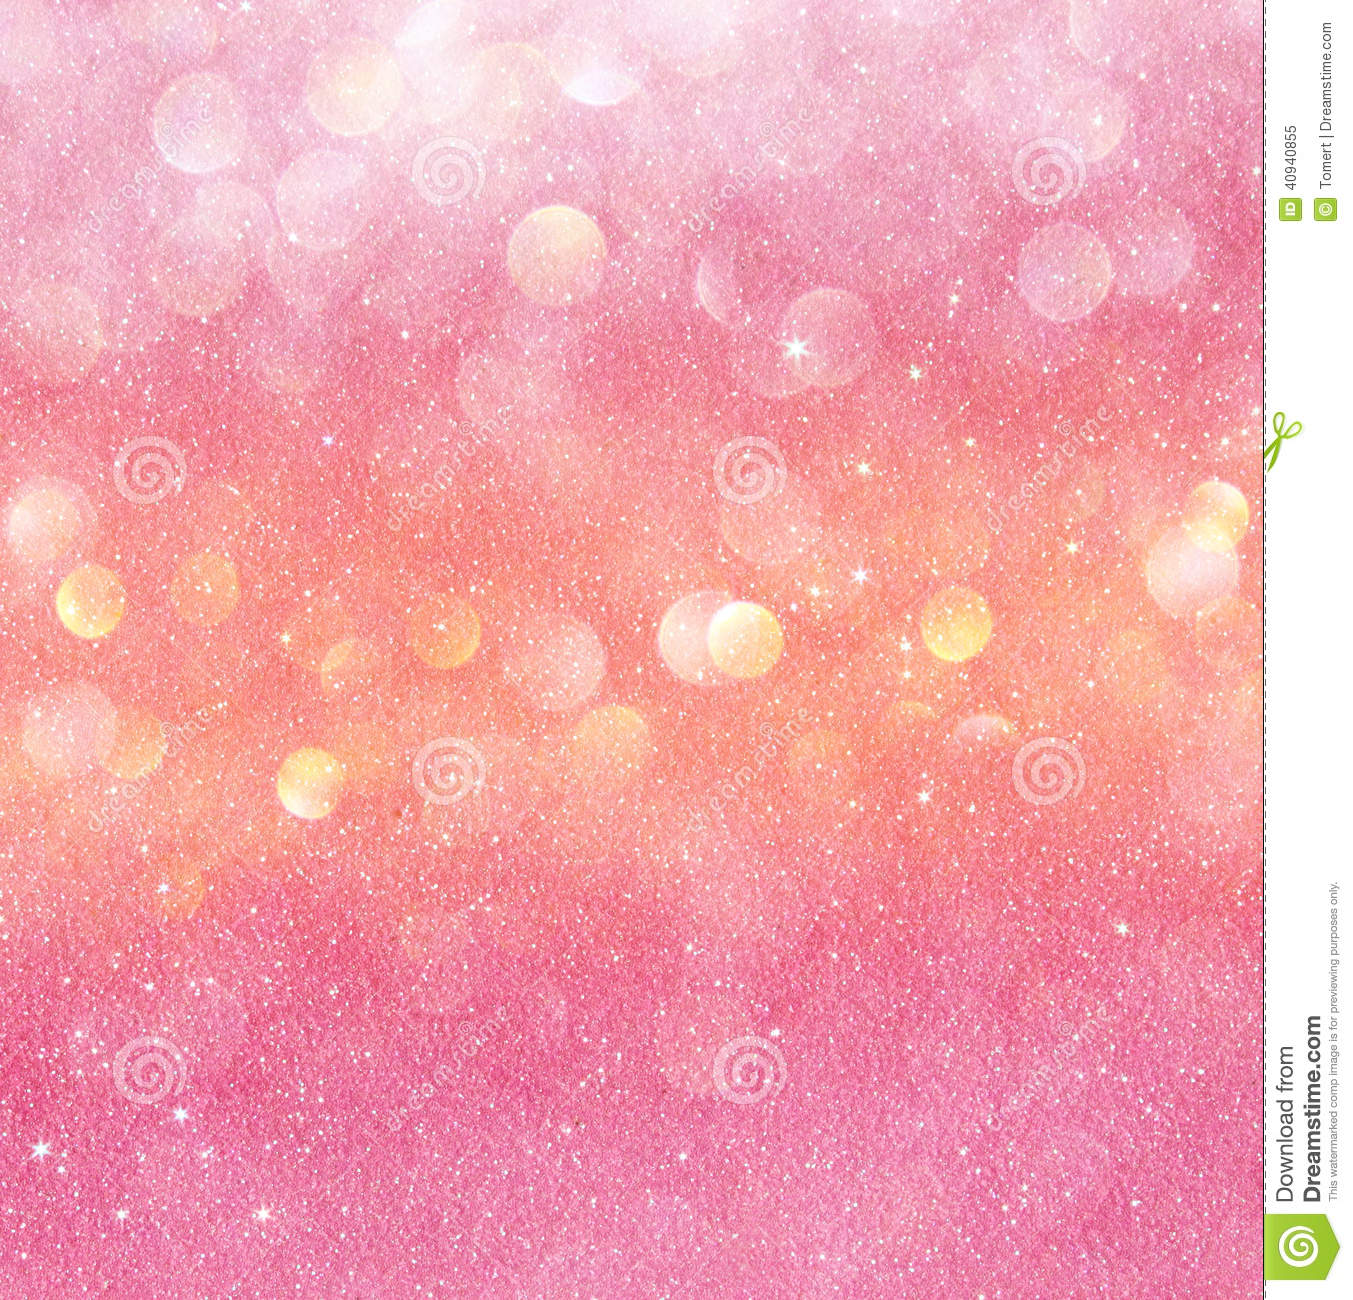 light pink and gold wallpaper - photo #36